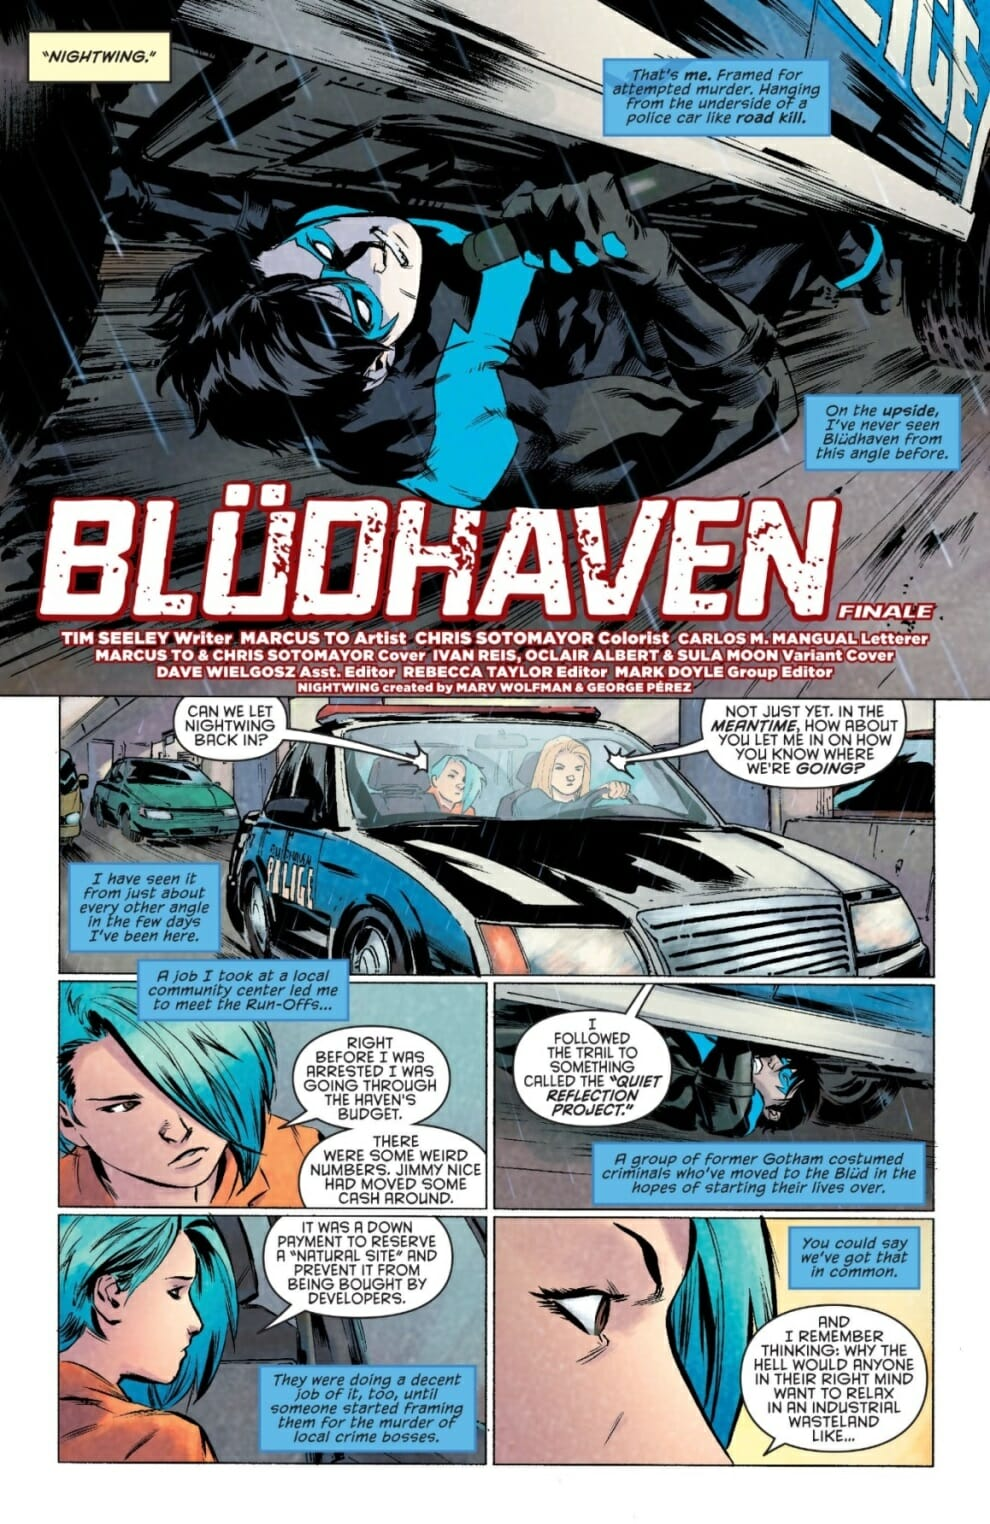 Click for full-page view & Nightwing #14 Spoiler Review - Comic Book Revolution